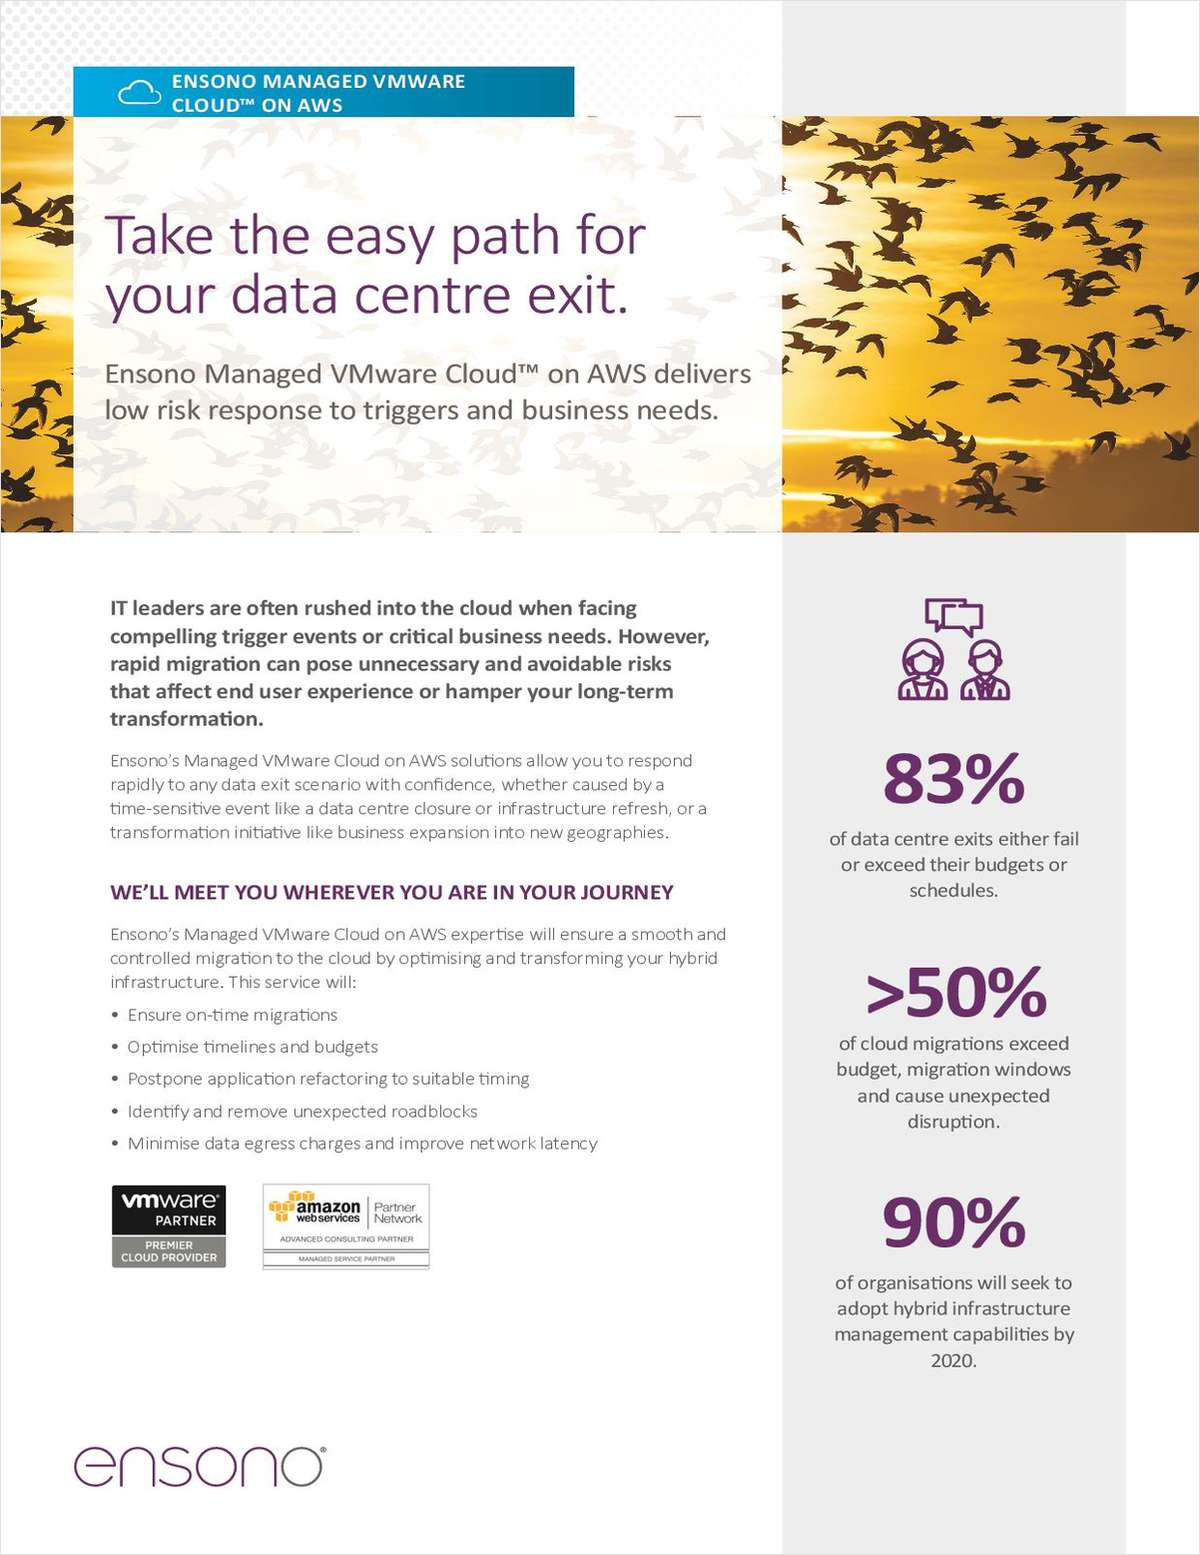 Take The Easy Path For Your Data Centre Exit